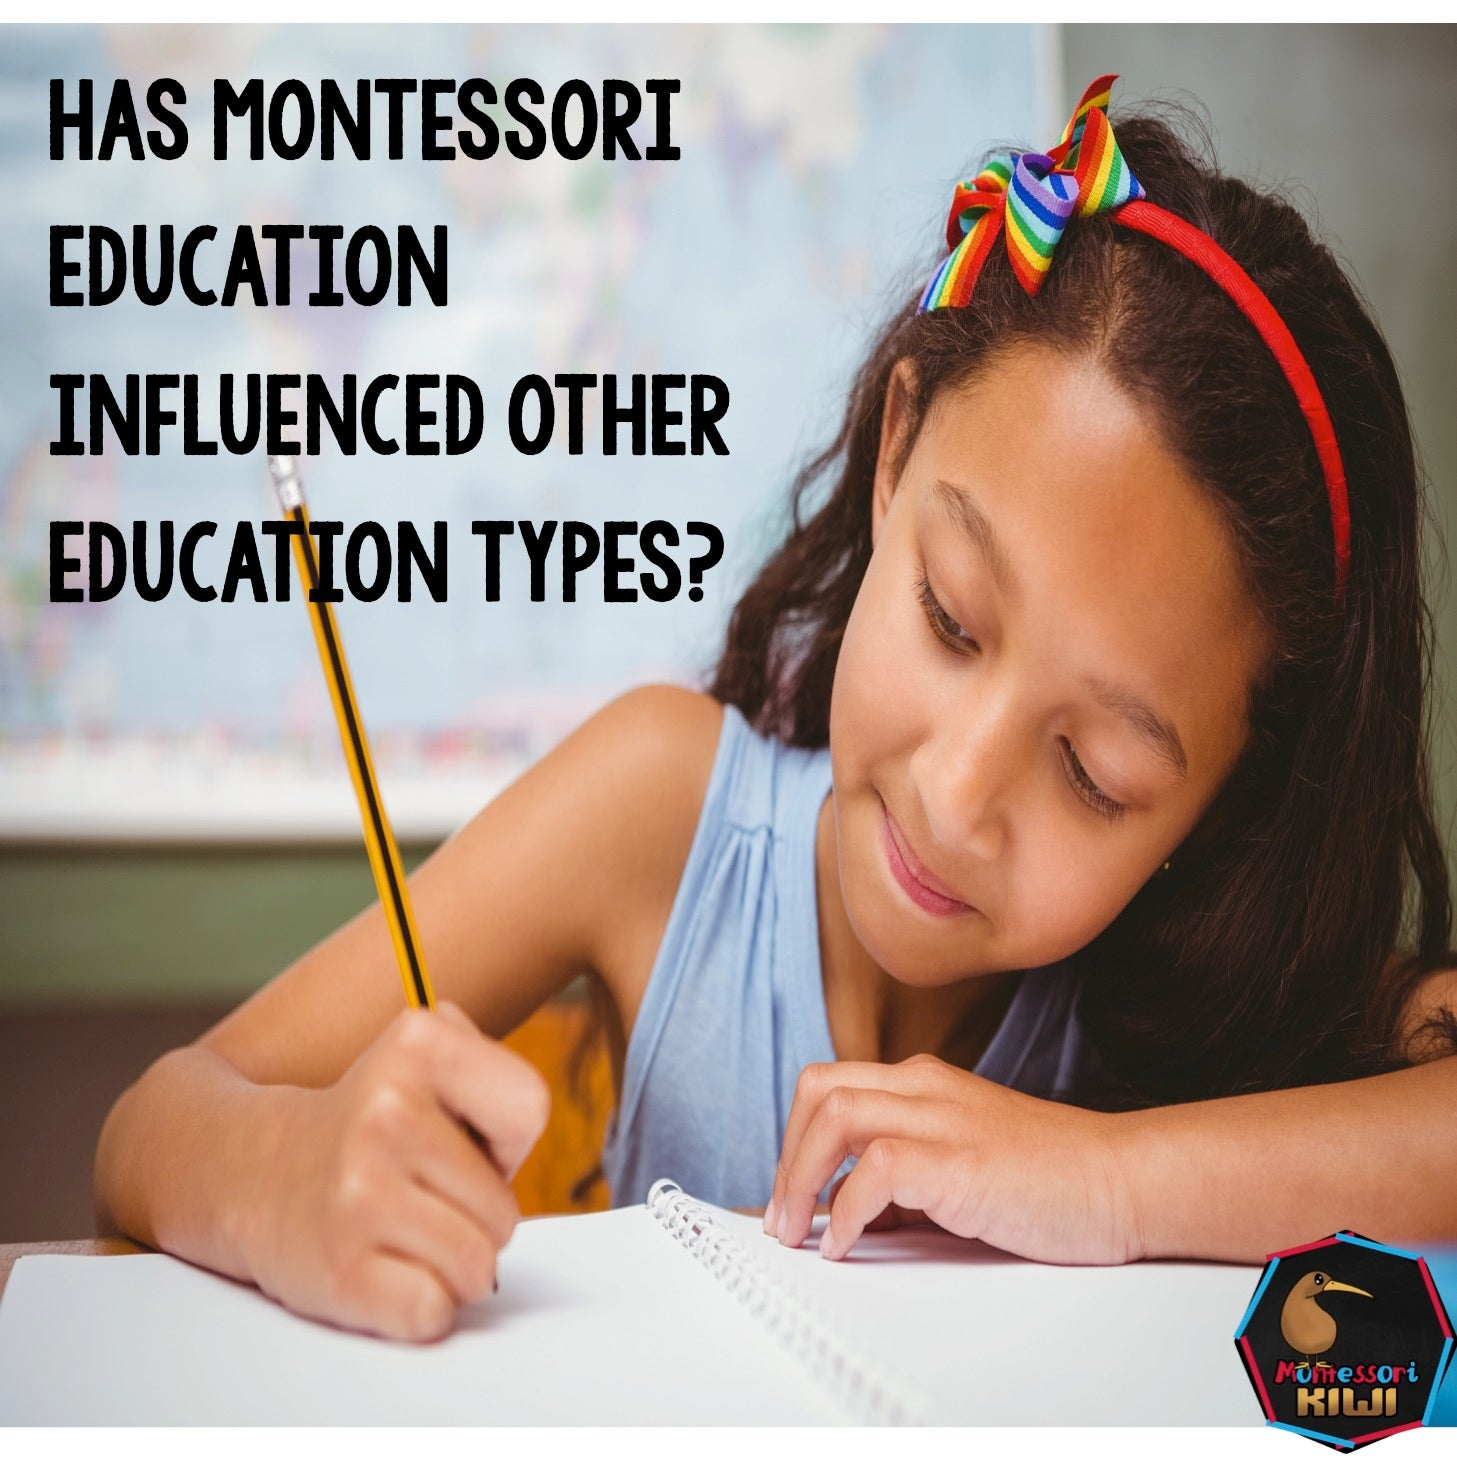 How Maria Montessori has impacted education....kind of....